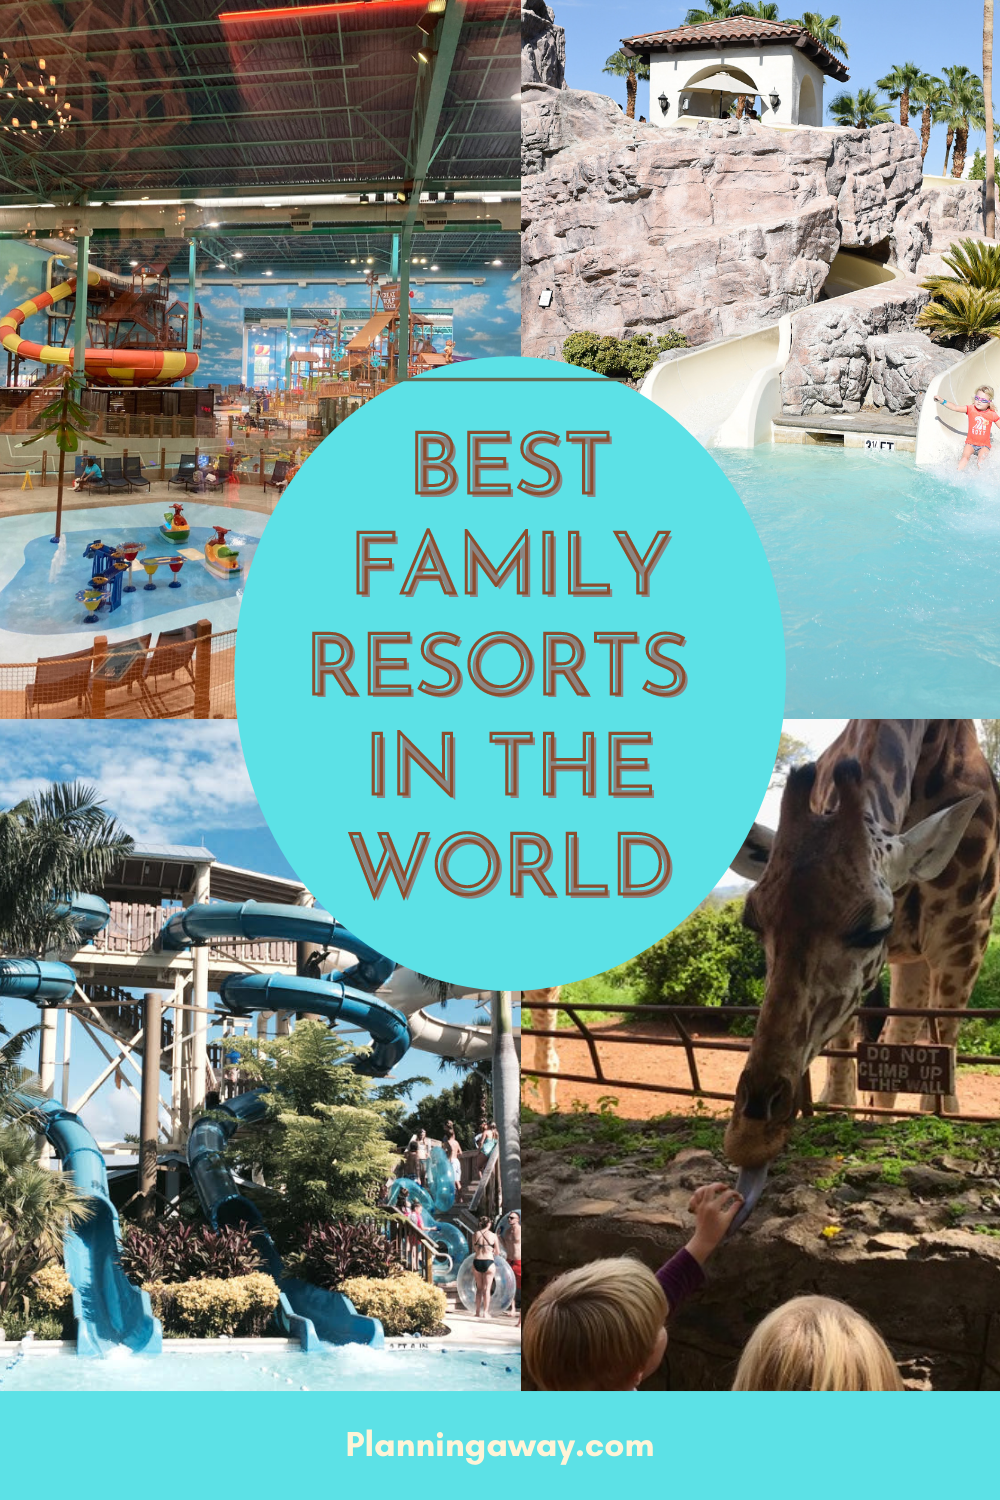 The Best Family Resorts In The World